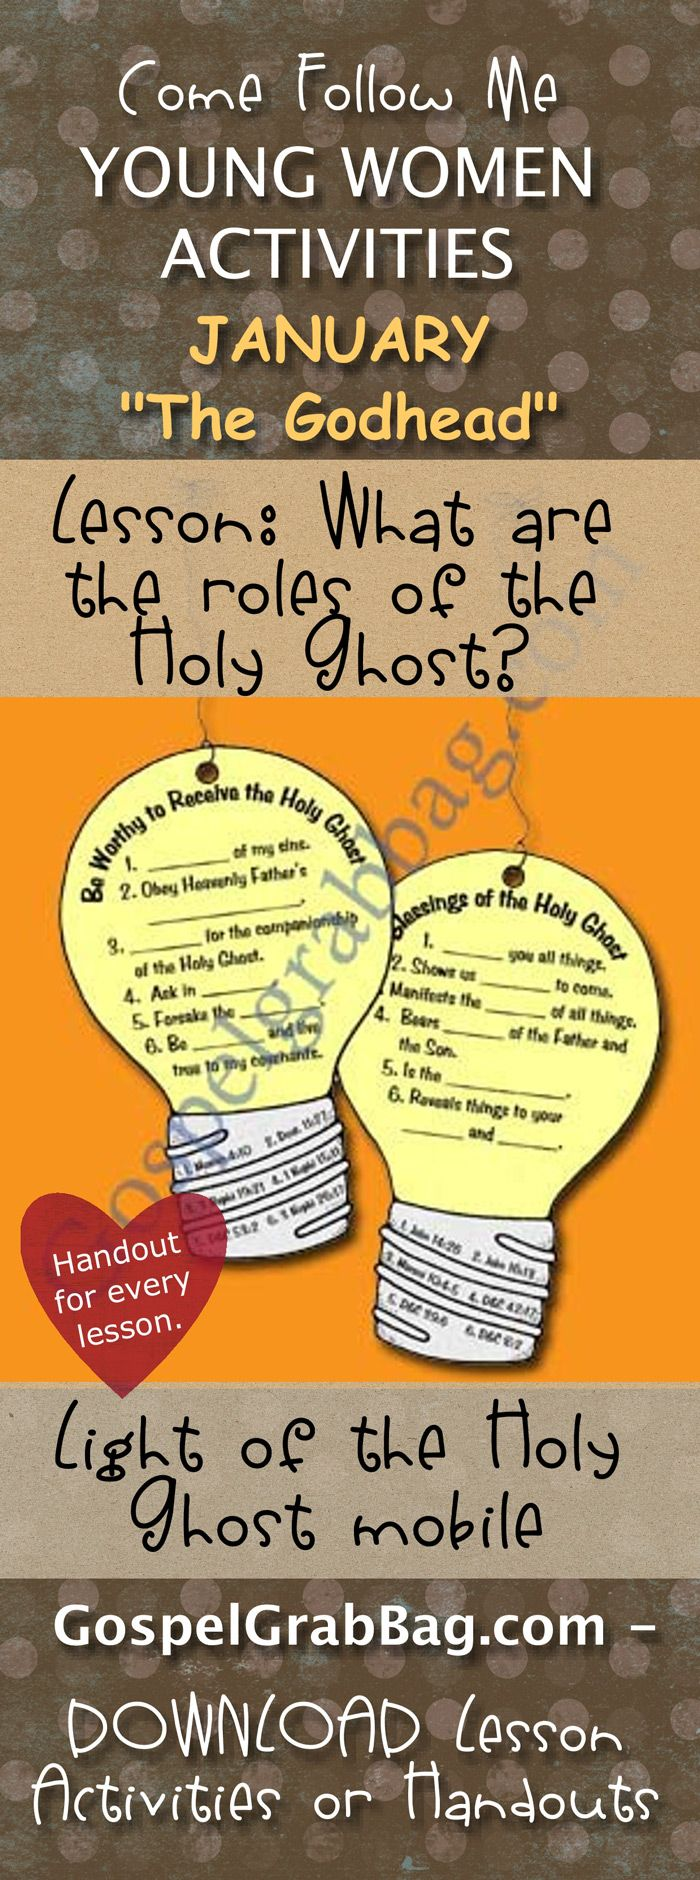 HOLY GHOST: Come Follow Me – LDS Young Women Activities, January Theme: Godhead, Why is Jesus Christ important in my life?, handout for every lesson, ACTIVITY: Light of the Holy Ghost mobile, Gospel grab bag – handouts to download from gospelgrabbag.com